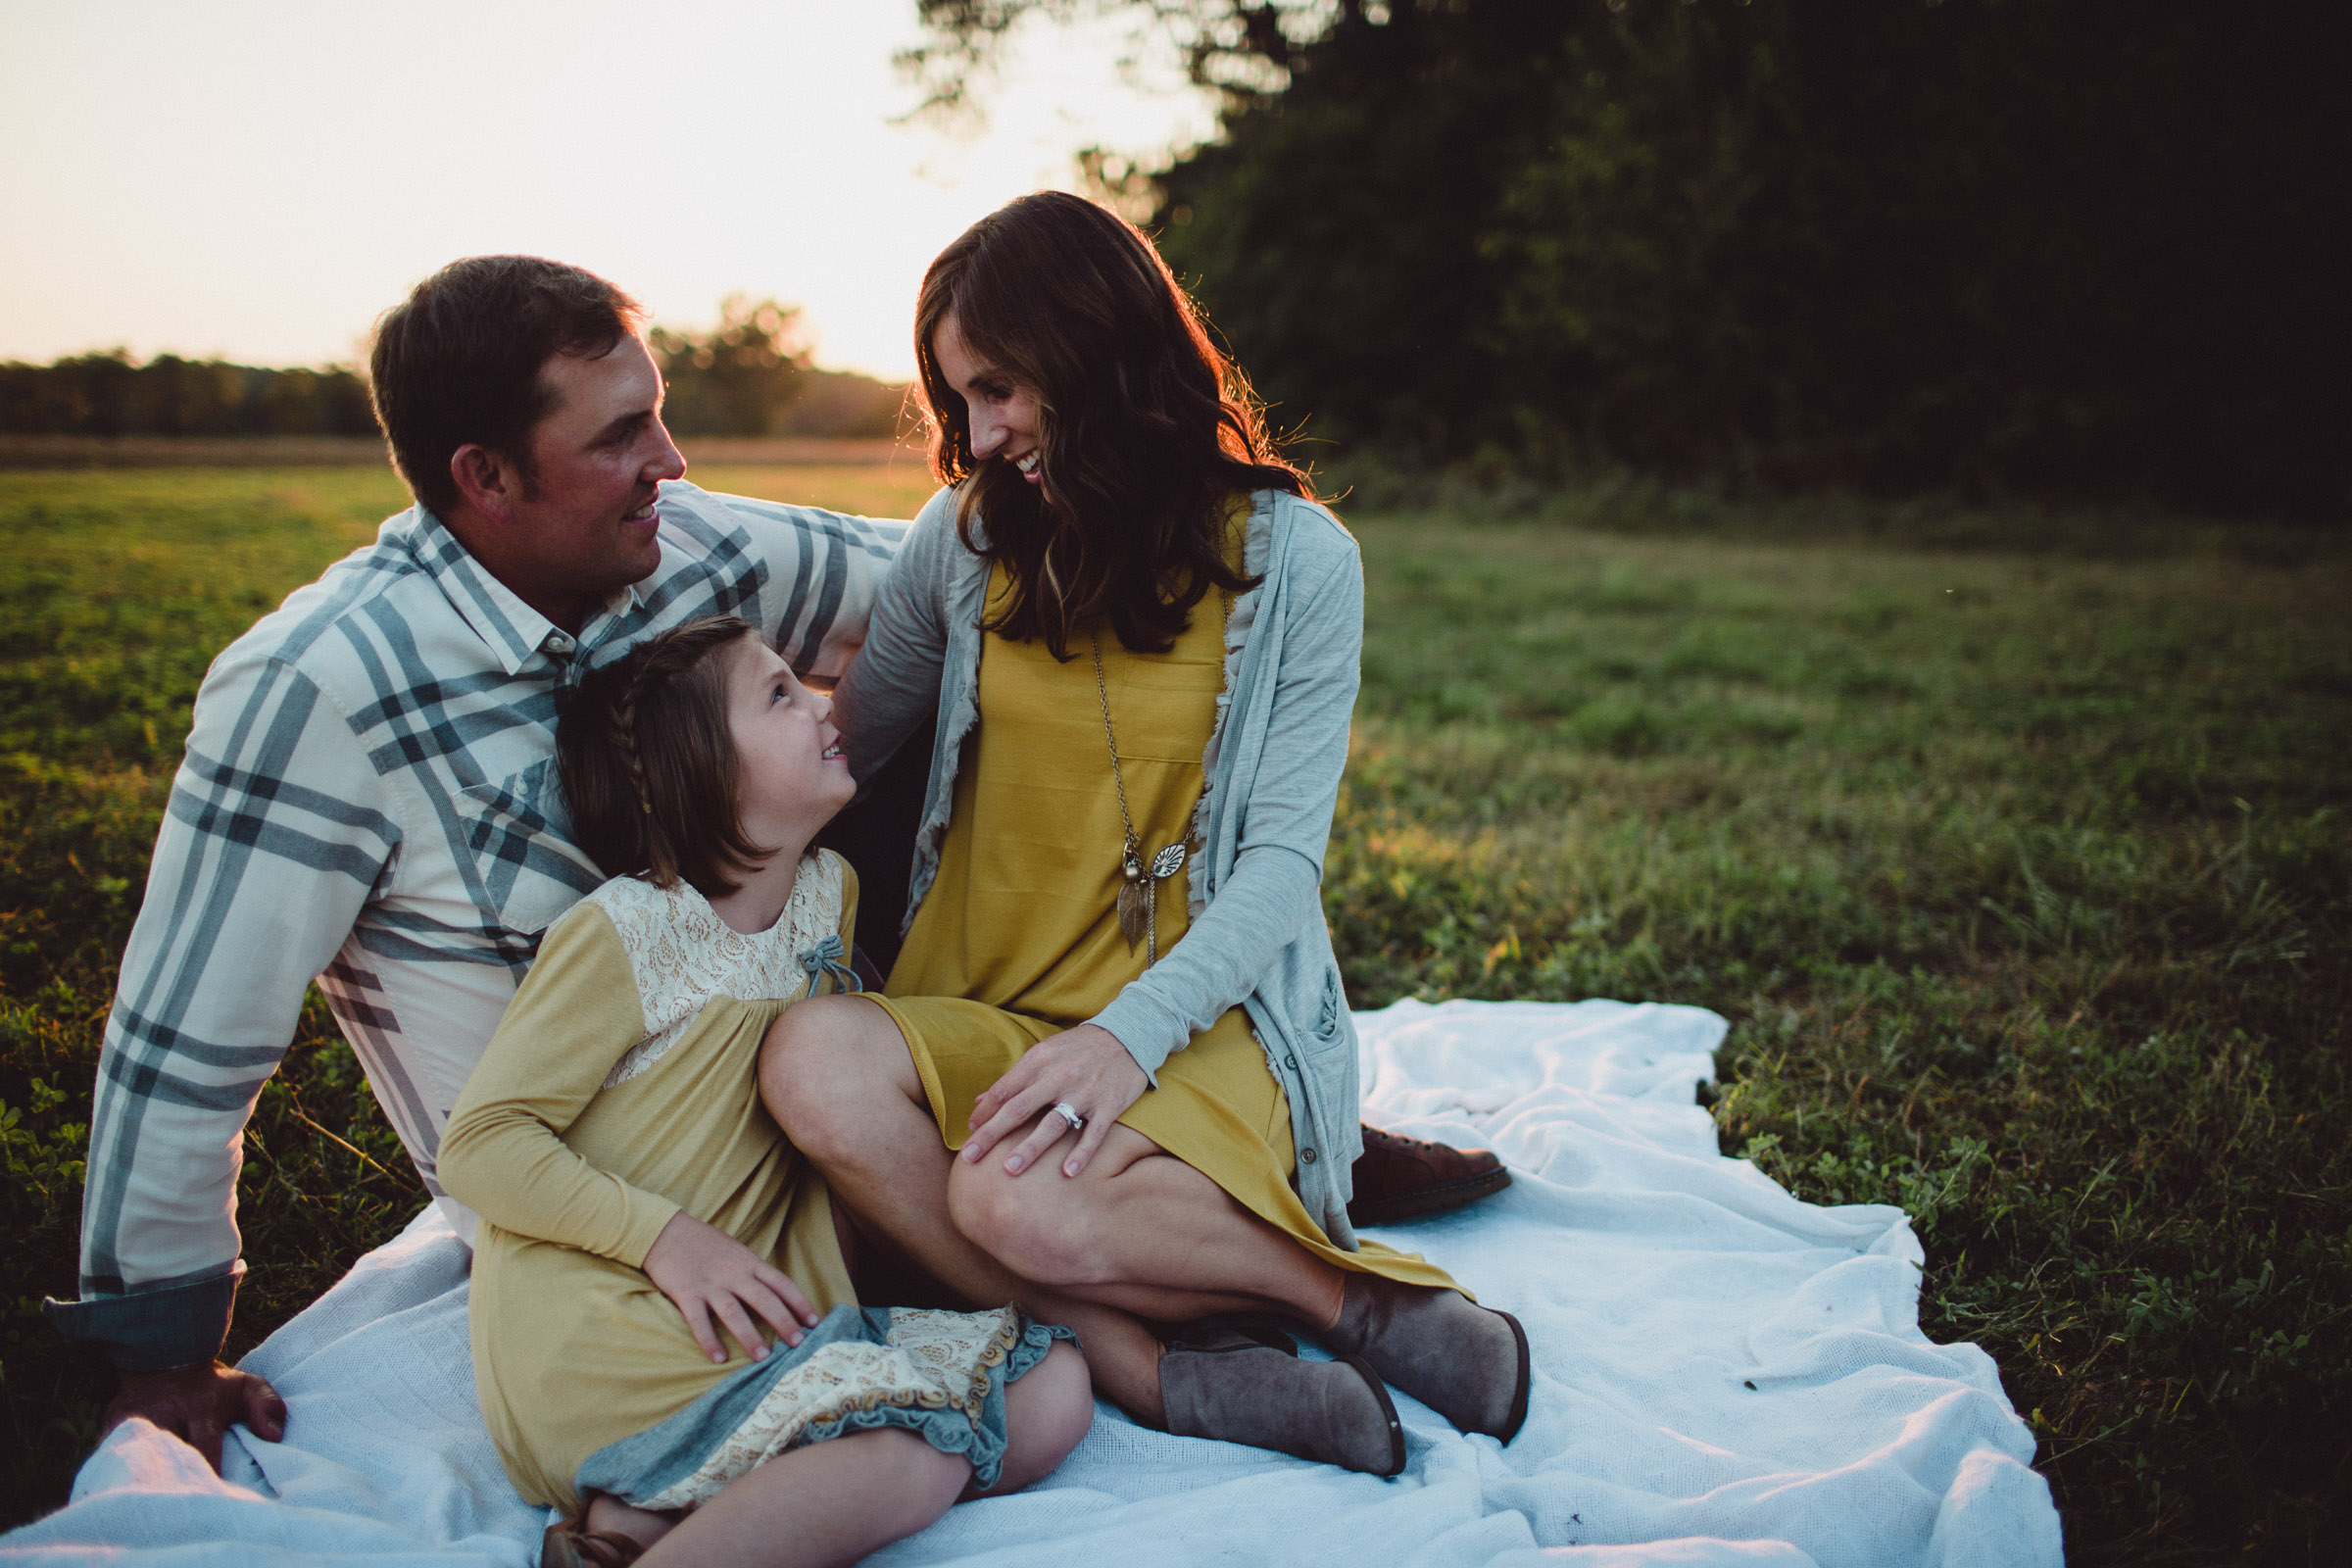 parents seated and loving on their daughter